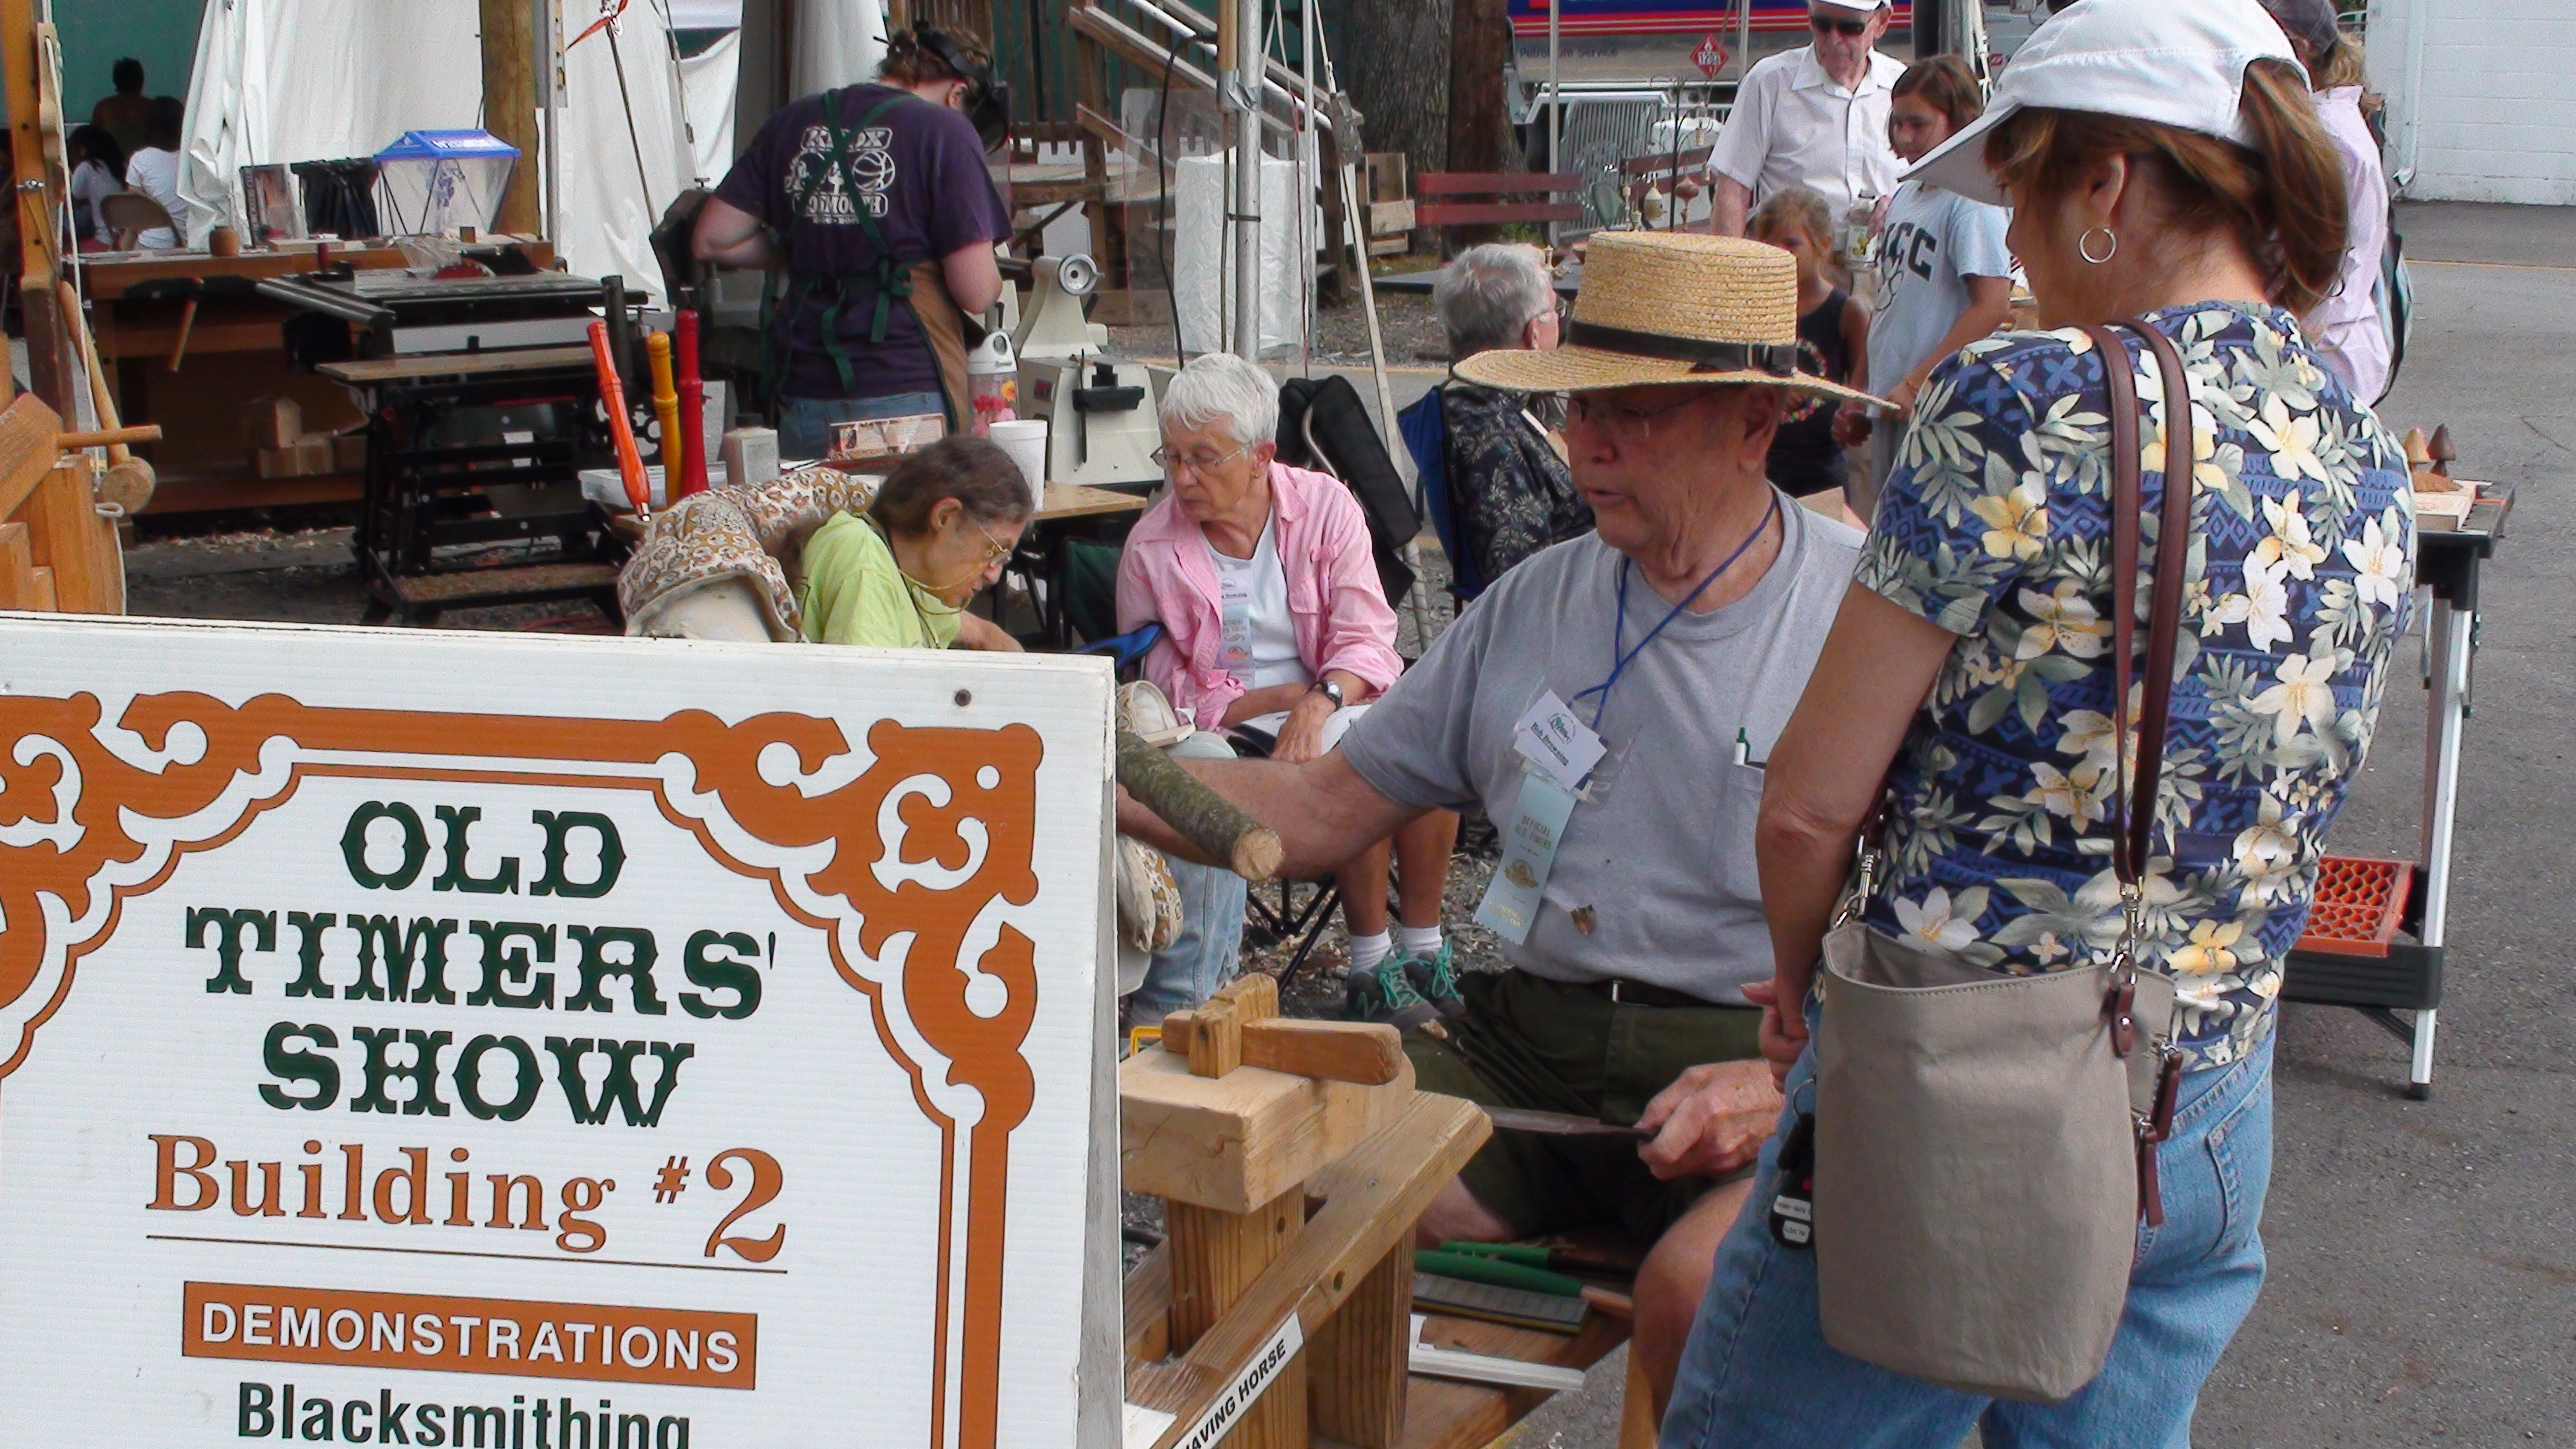 Mcc blog montgomery county carvers supporting passionate carvers